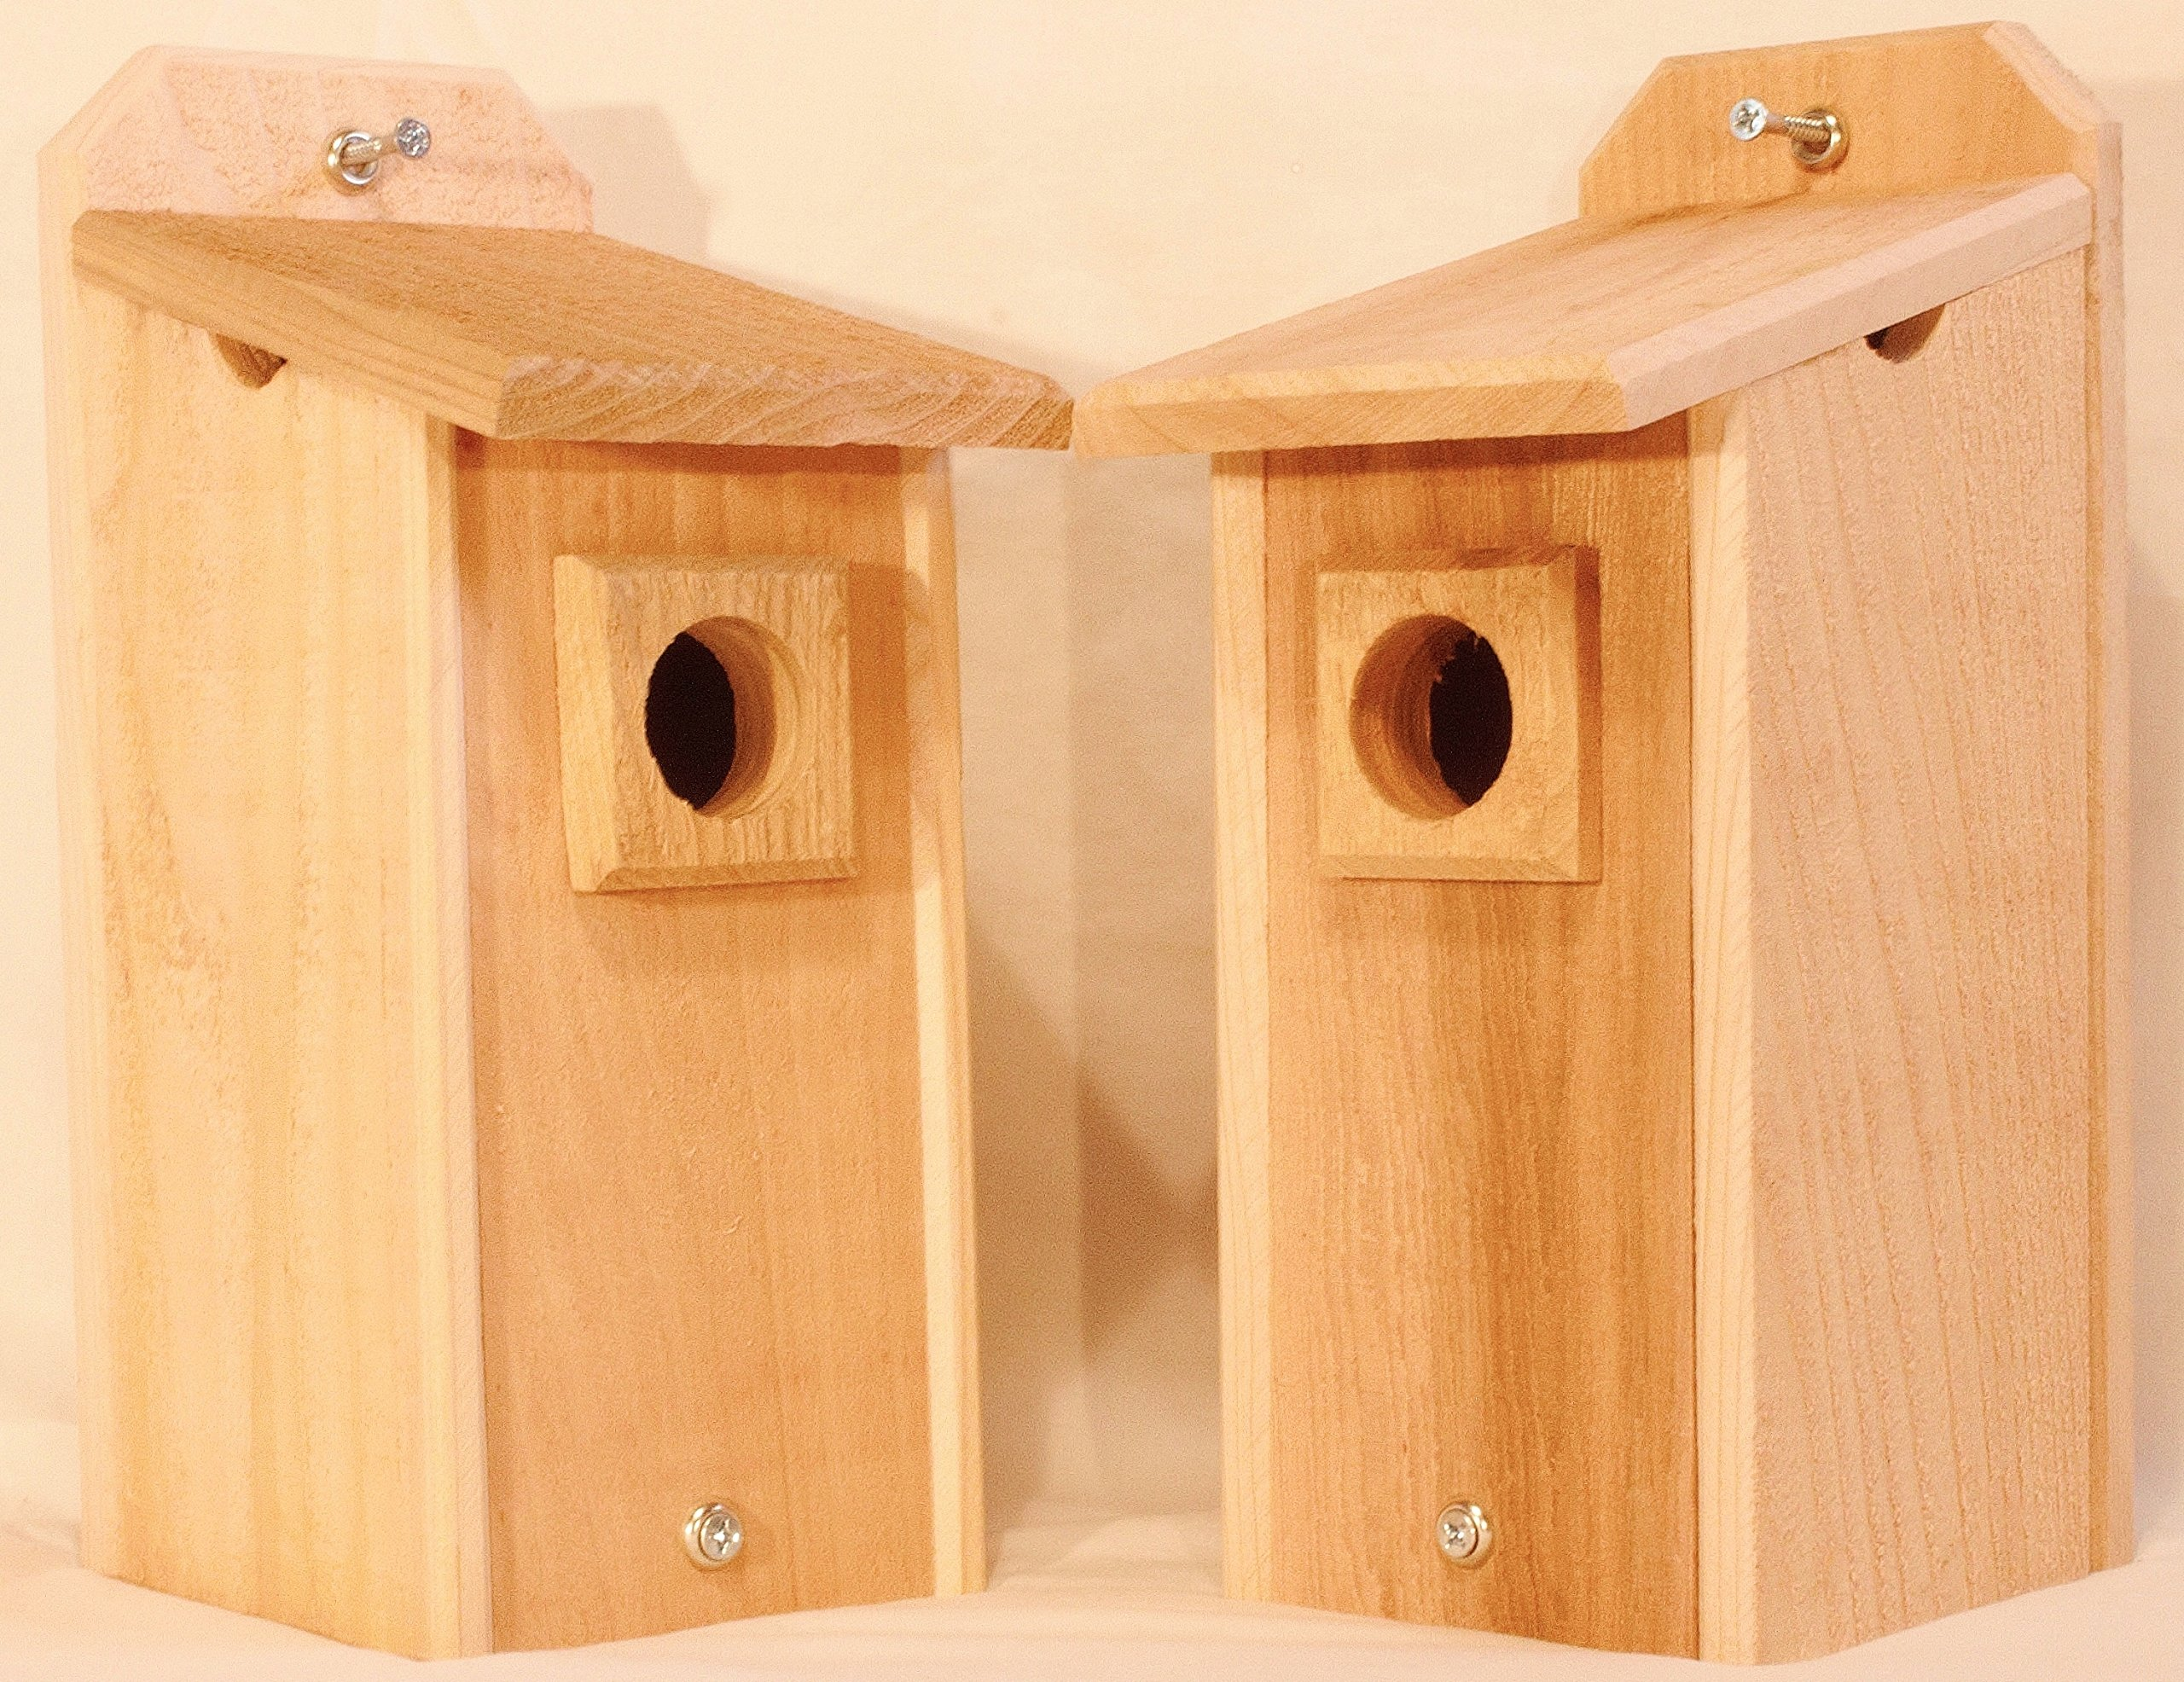 2 Cedar Bluebird Houses, Bird House by Ben Hargis